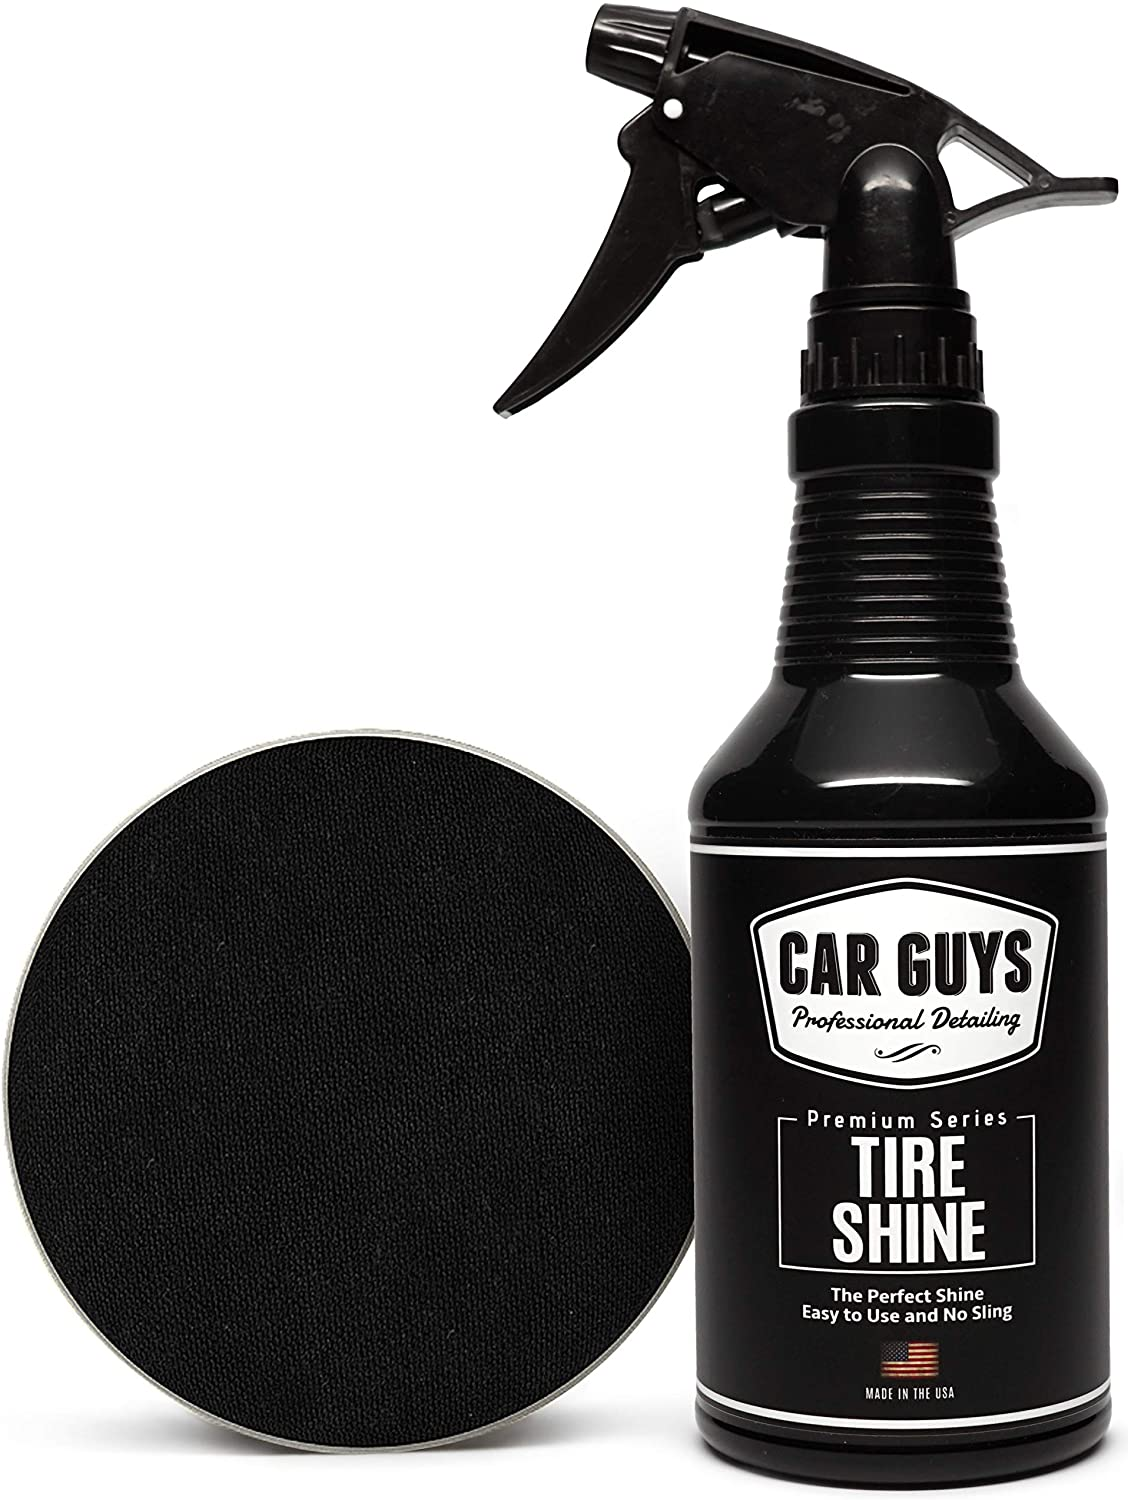 CarGuys Tire Shine Spray